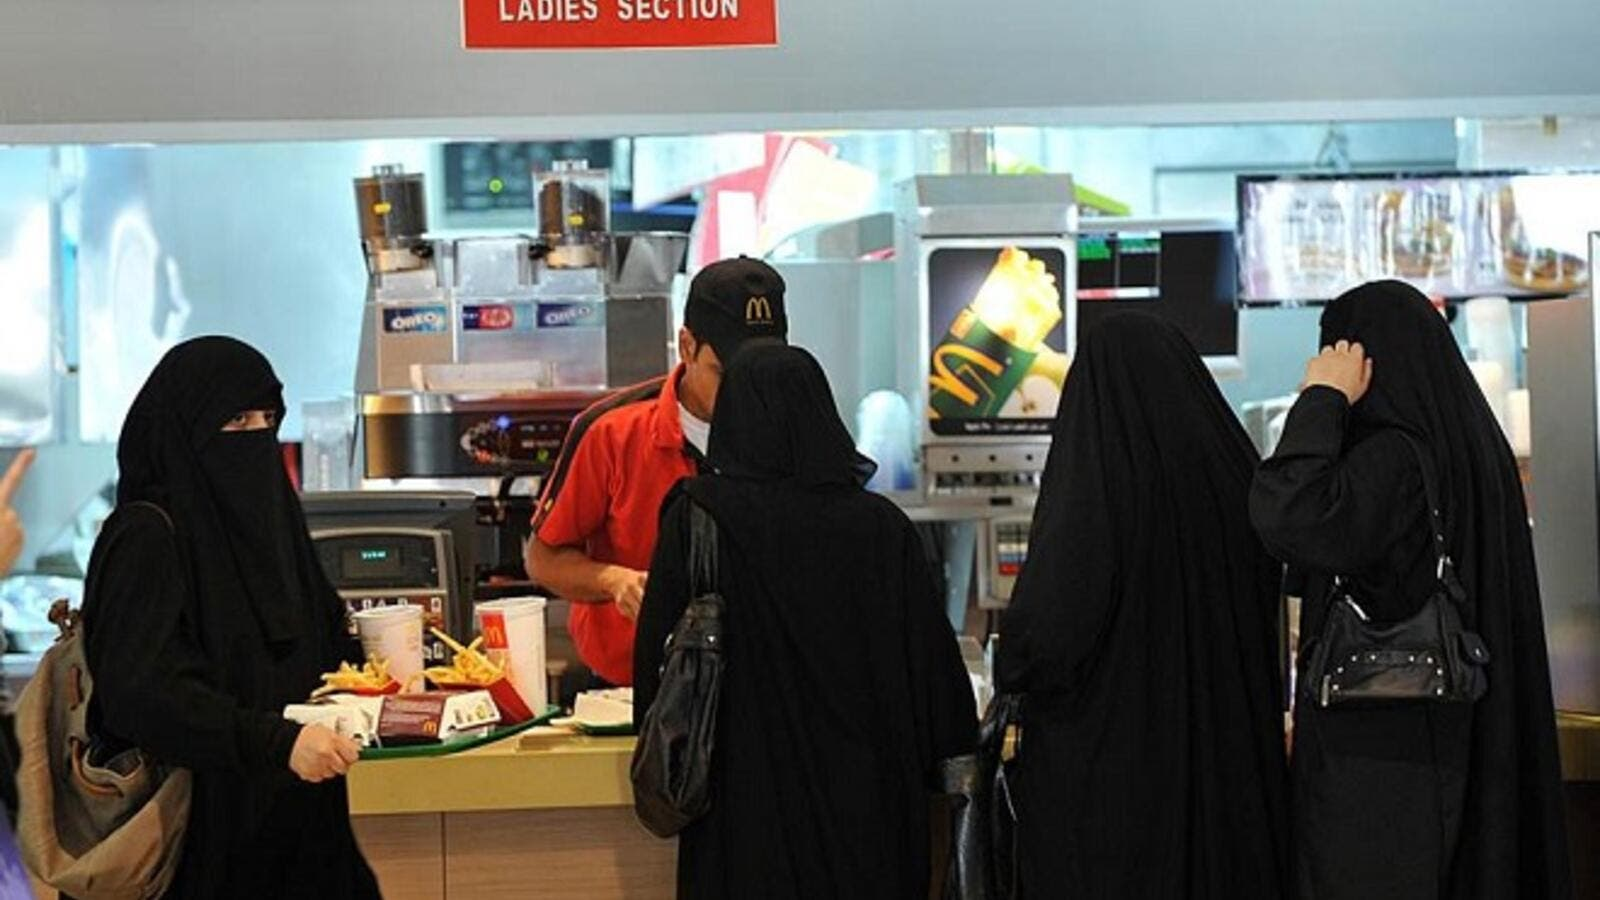 Saudi women are still segregated from men in many walks of life. (Fayez Nureldine/ AFP)